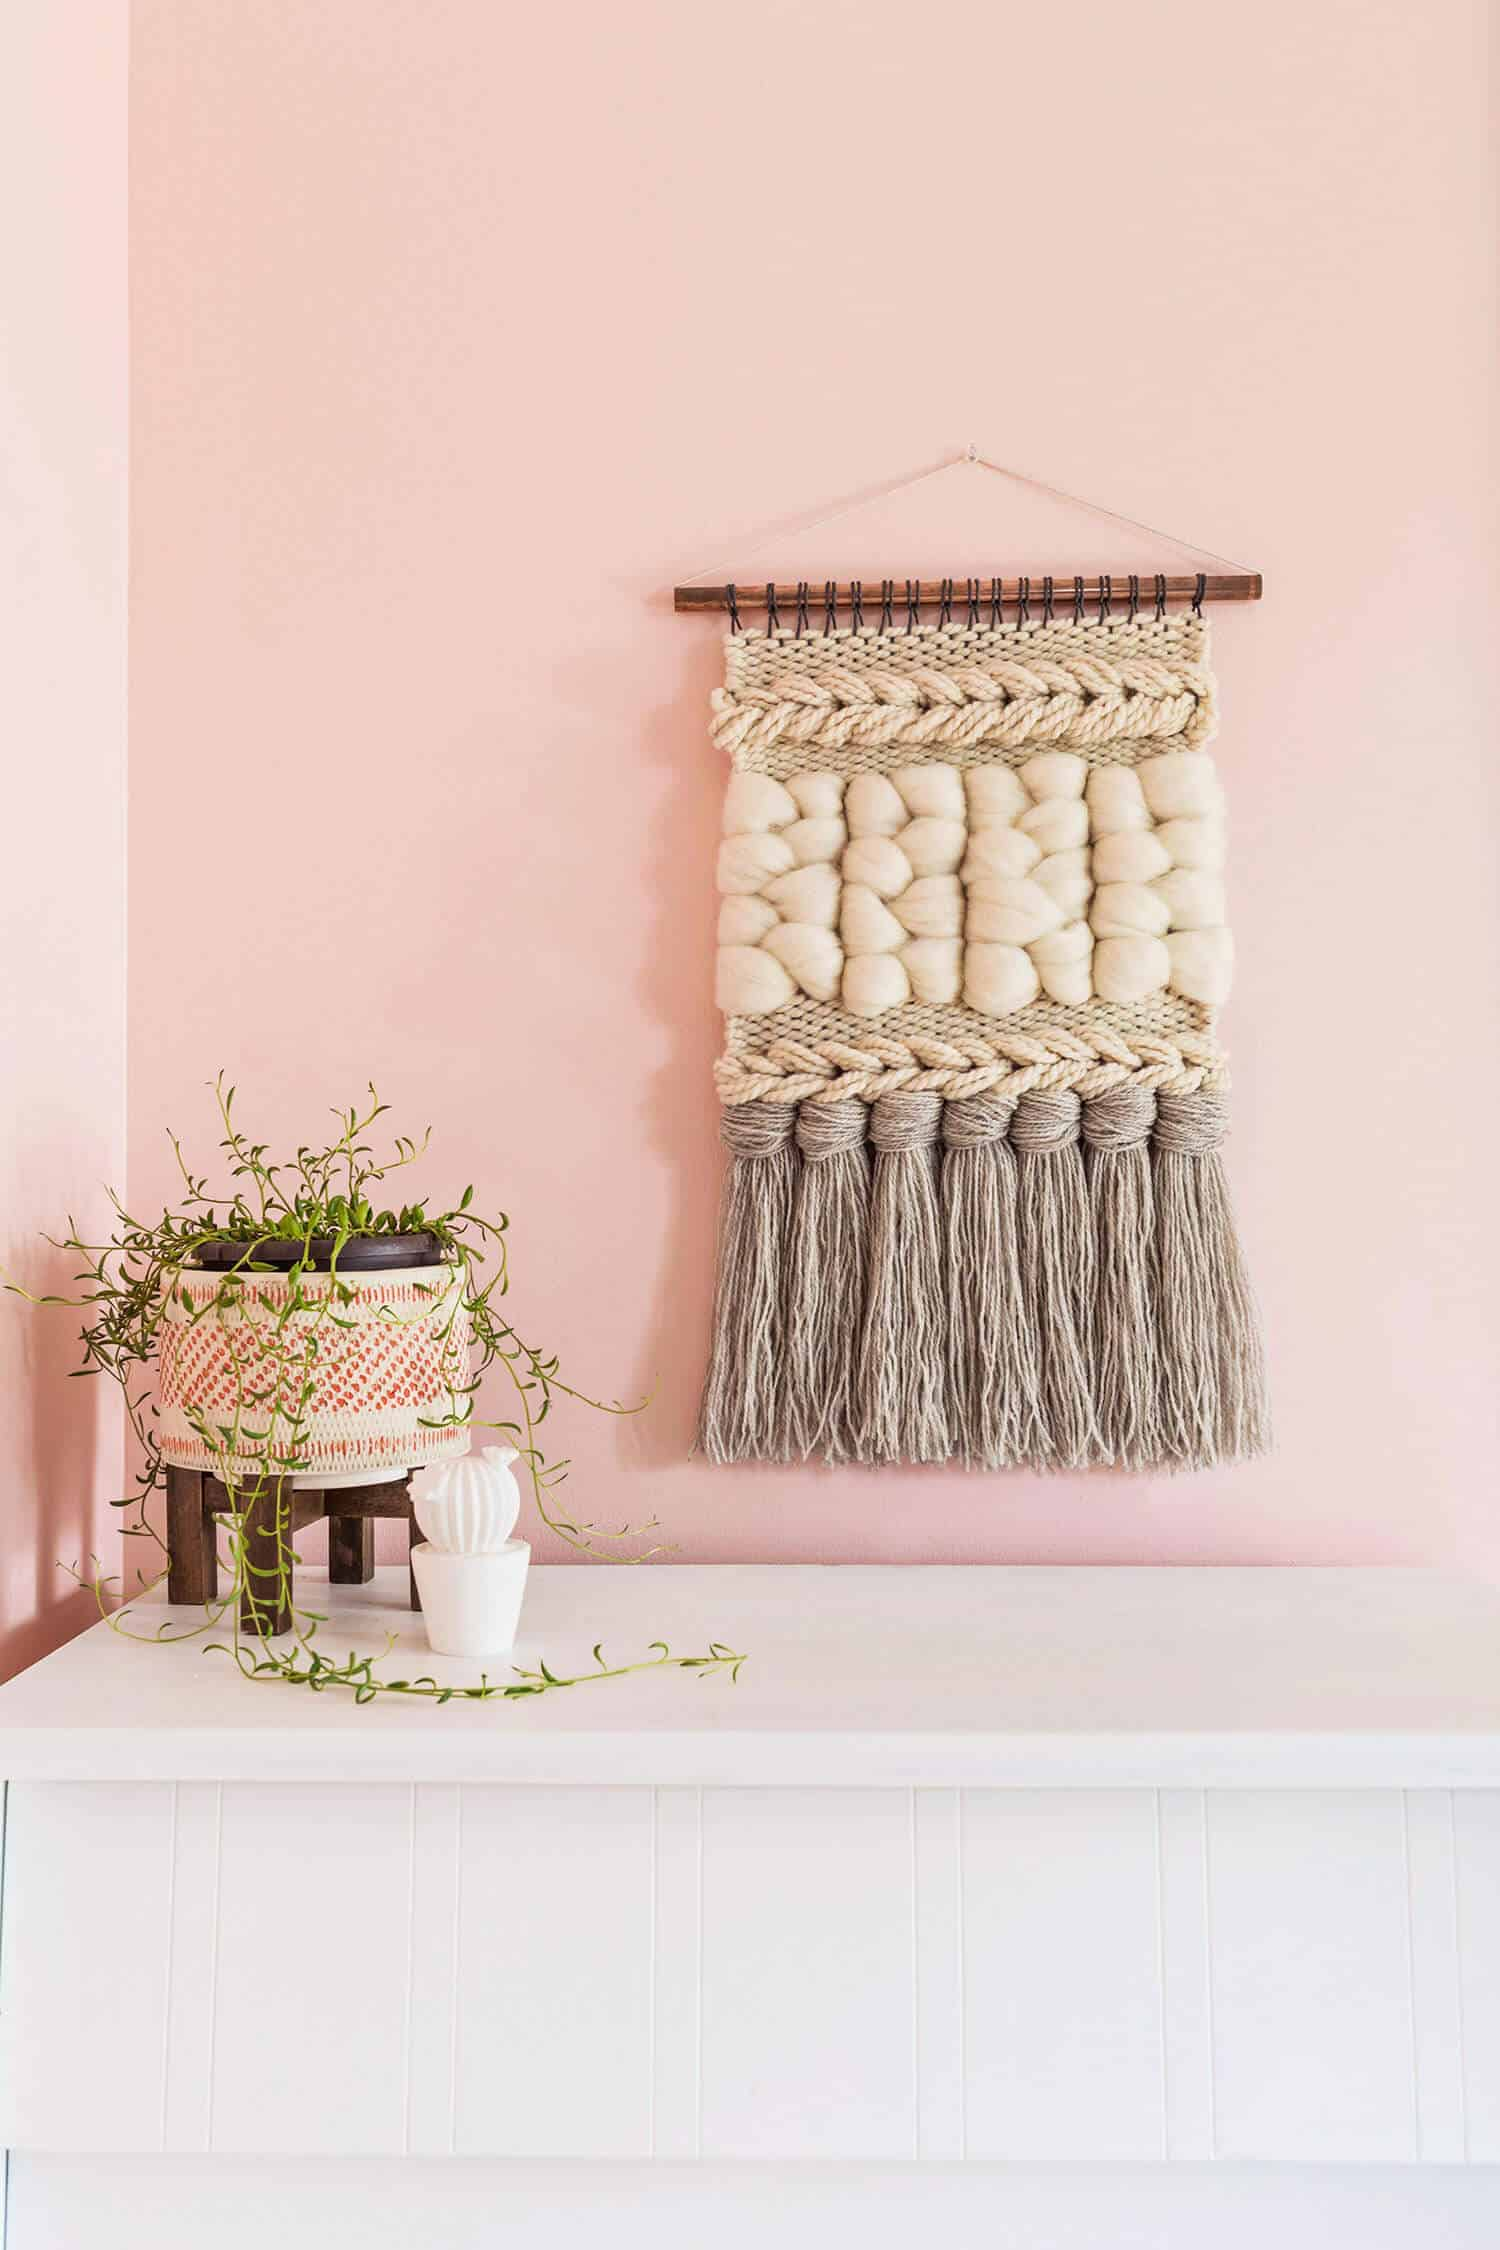 Chunky braid and tassel woven wall hanging